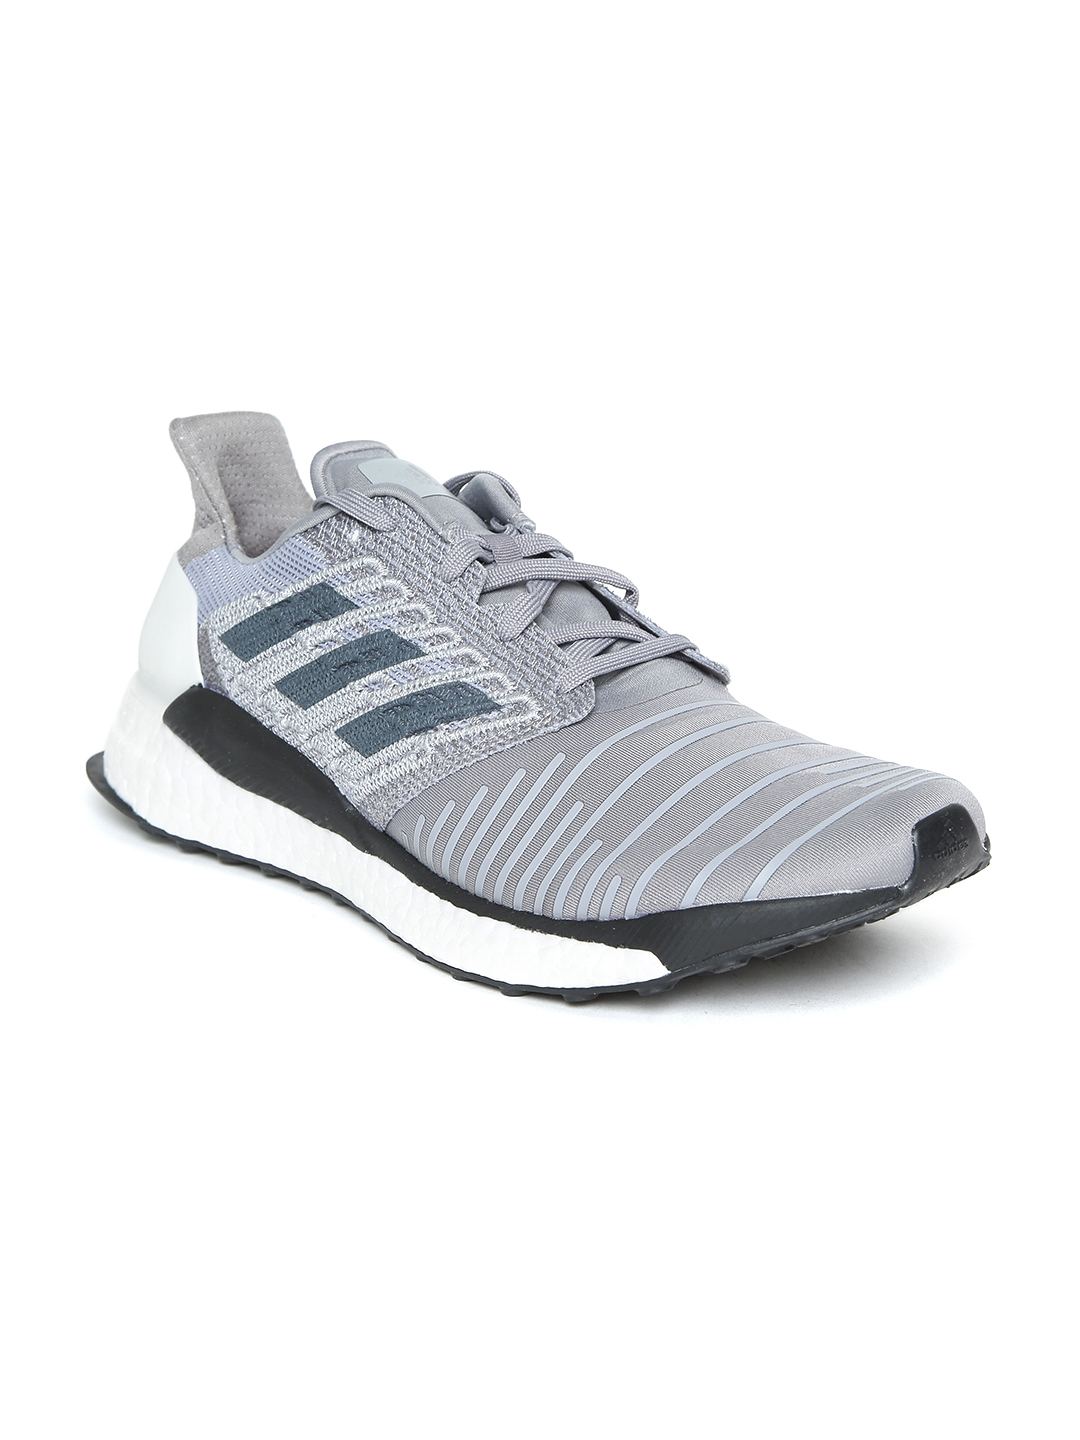 0e5450c3b Buy ADIDAS Men Grey Solar Boost Running Shoes - Sports Shoes for Men ...